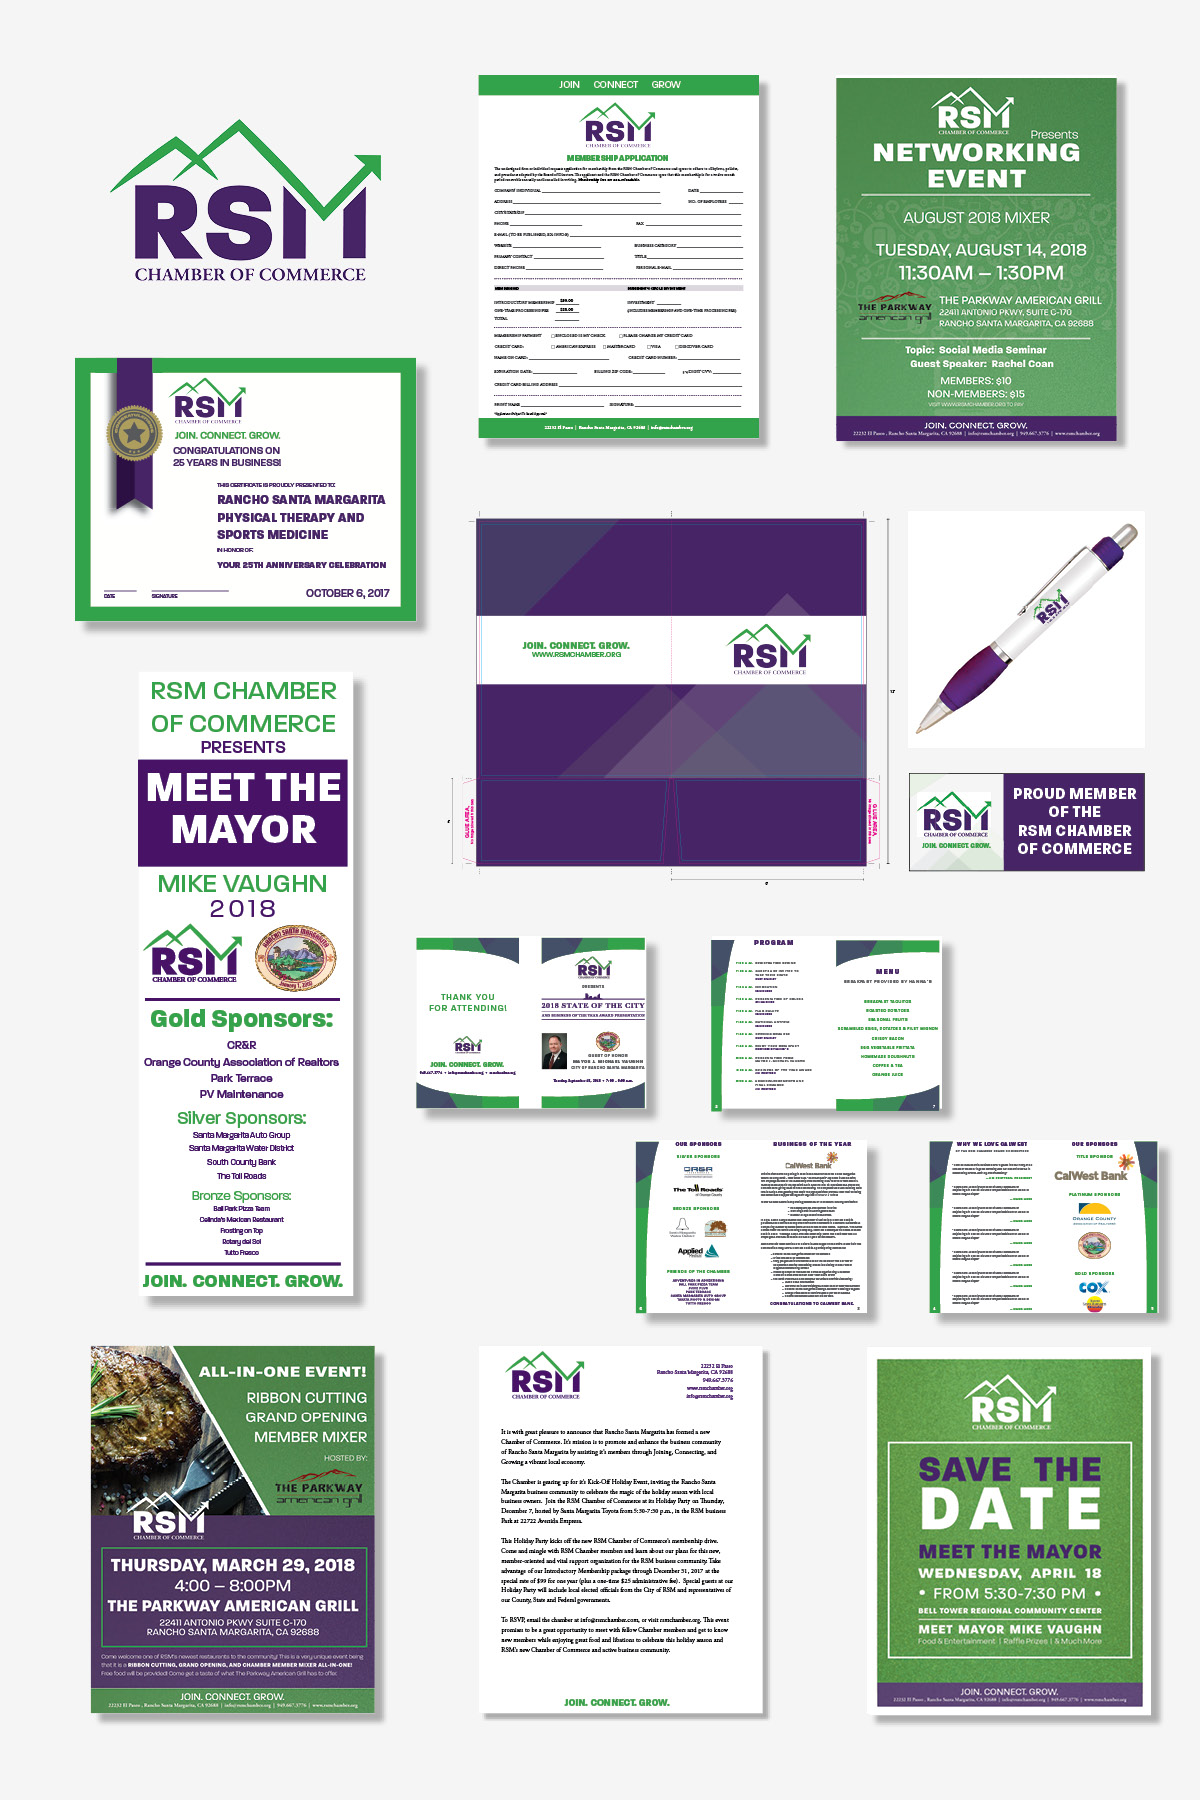 RSM CHAMBER OF COMMERCE   For over a year, Brand Hatch's founder, Rachel Coan, has been VP of Marketing and Communications for the RSM Chamber of Commerce and currently sits on the Board of Directors. She is in charge of all Marketing, Design, and Communication for the Chamber. This is a sample of the brand she developed.